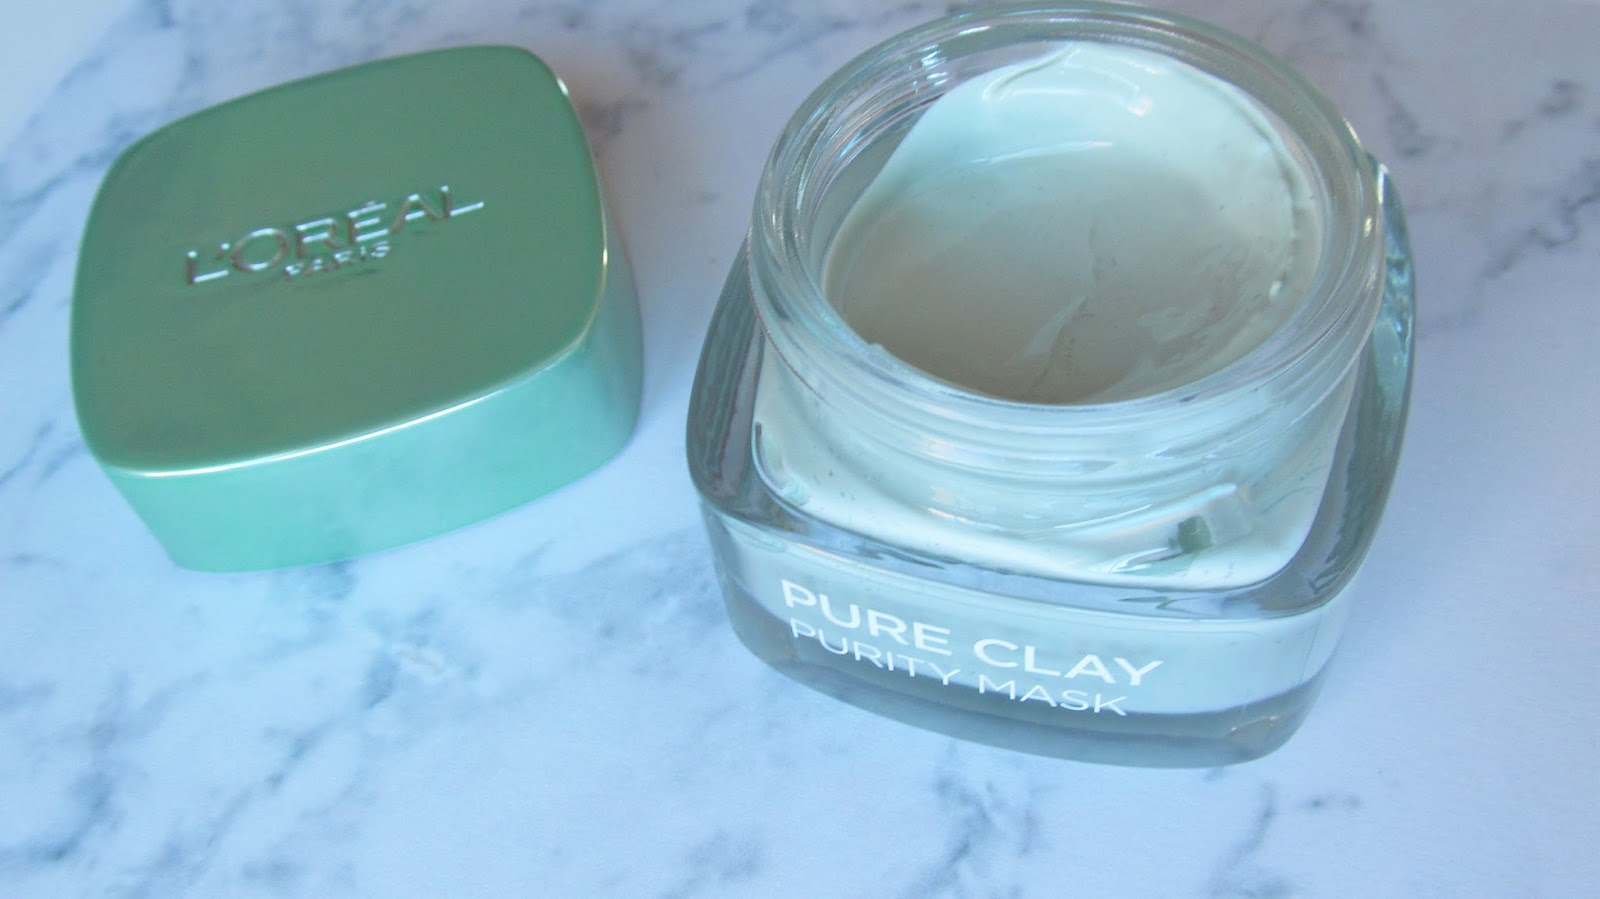 l'oreal pure clay mask review blog purity